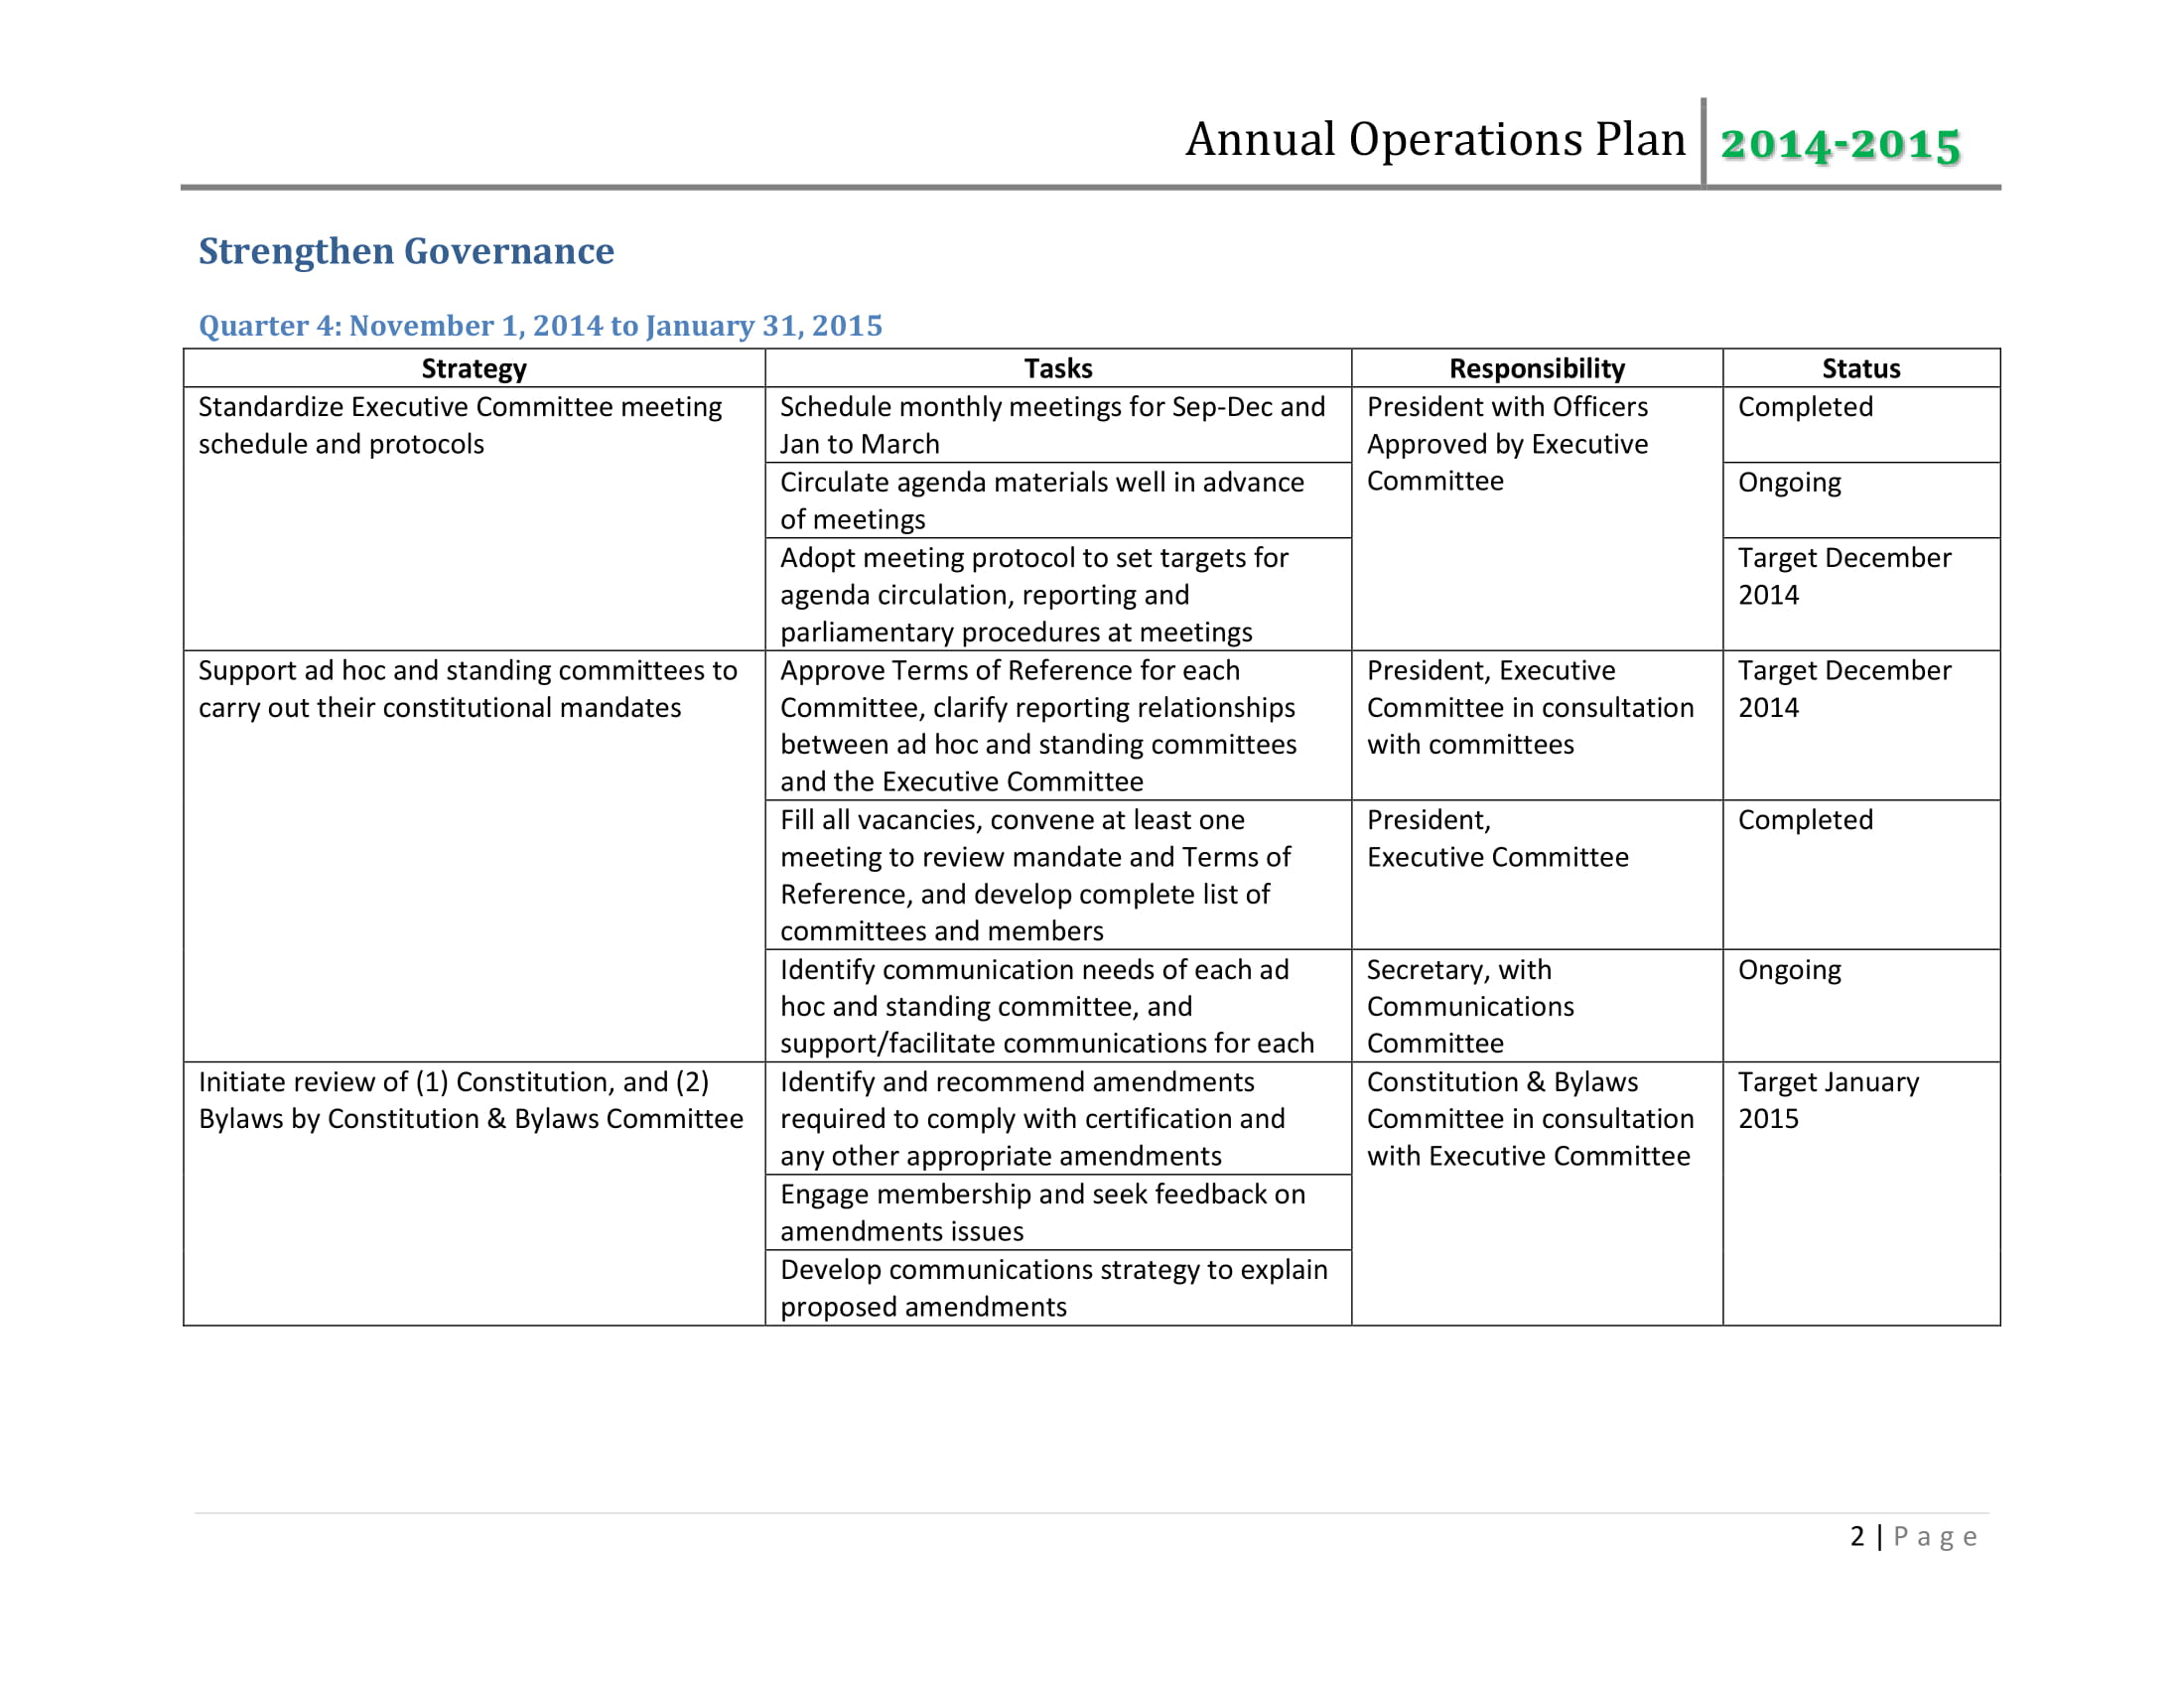 annual operational plan example3